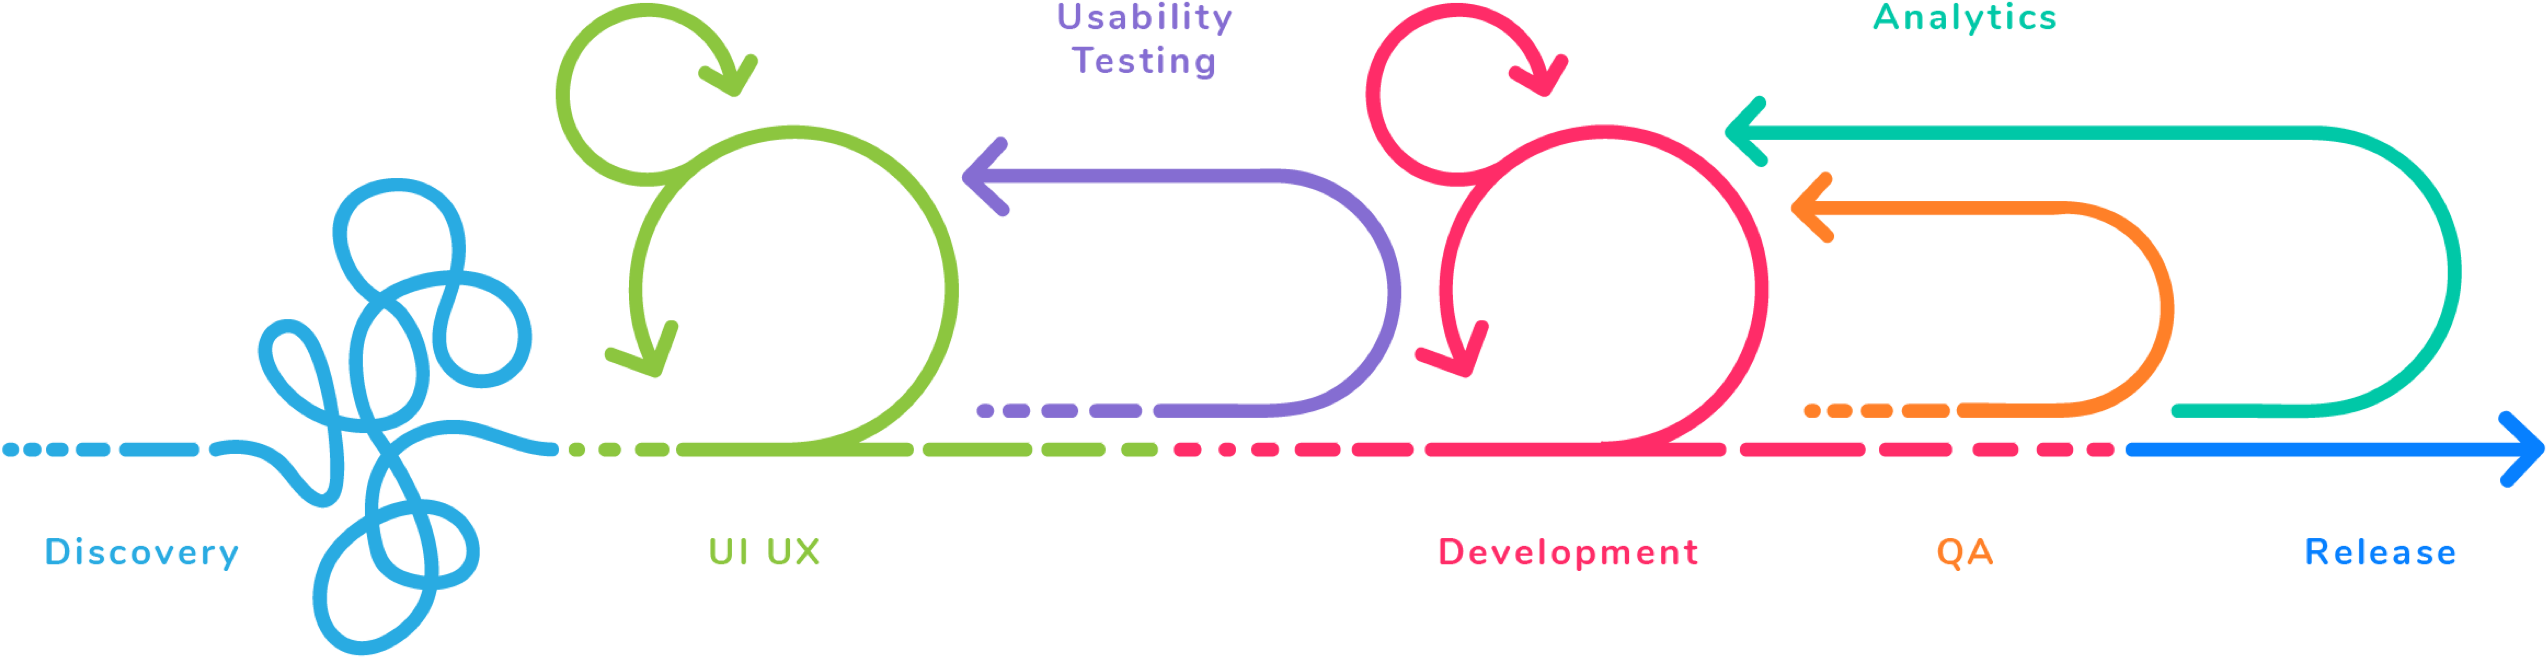 Krasamo's Agile design and development process